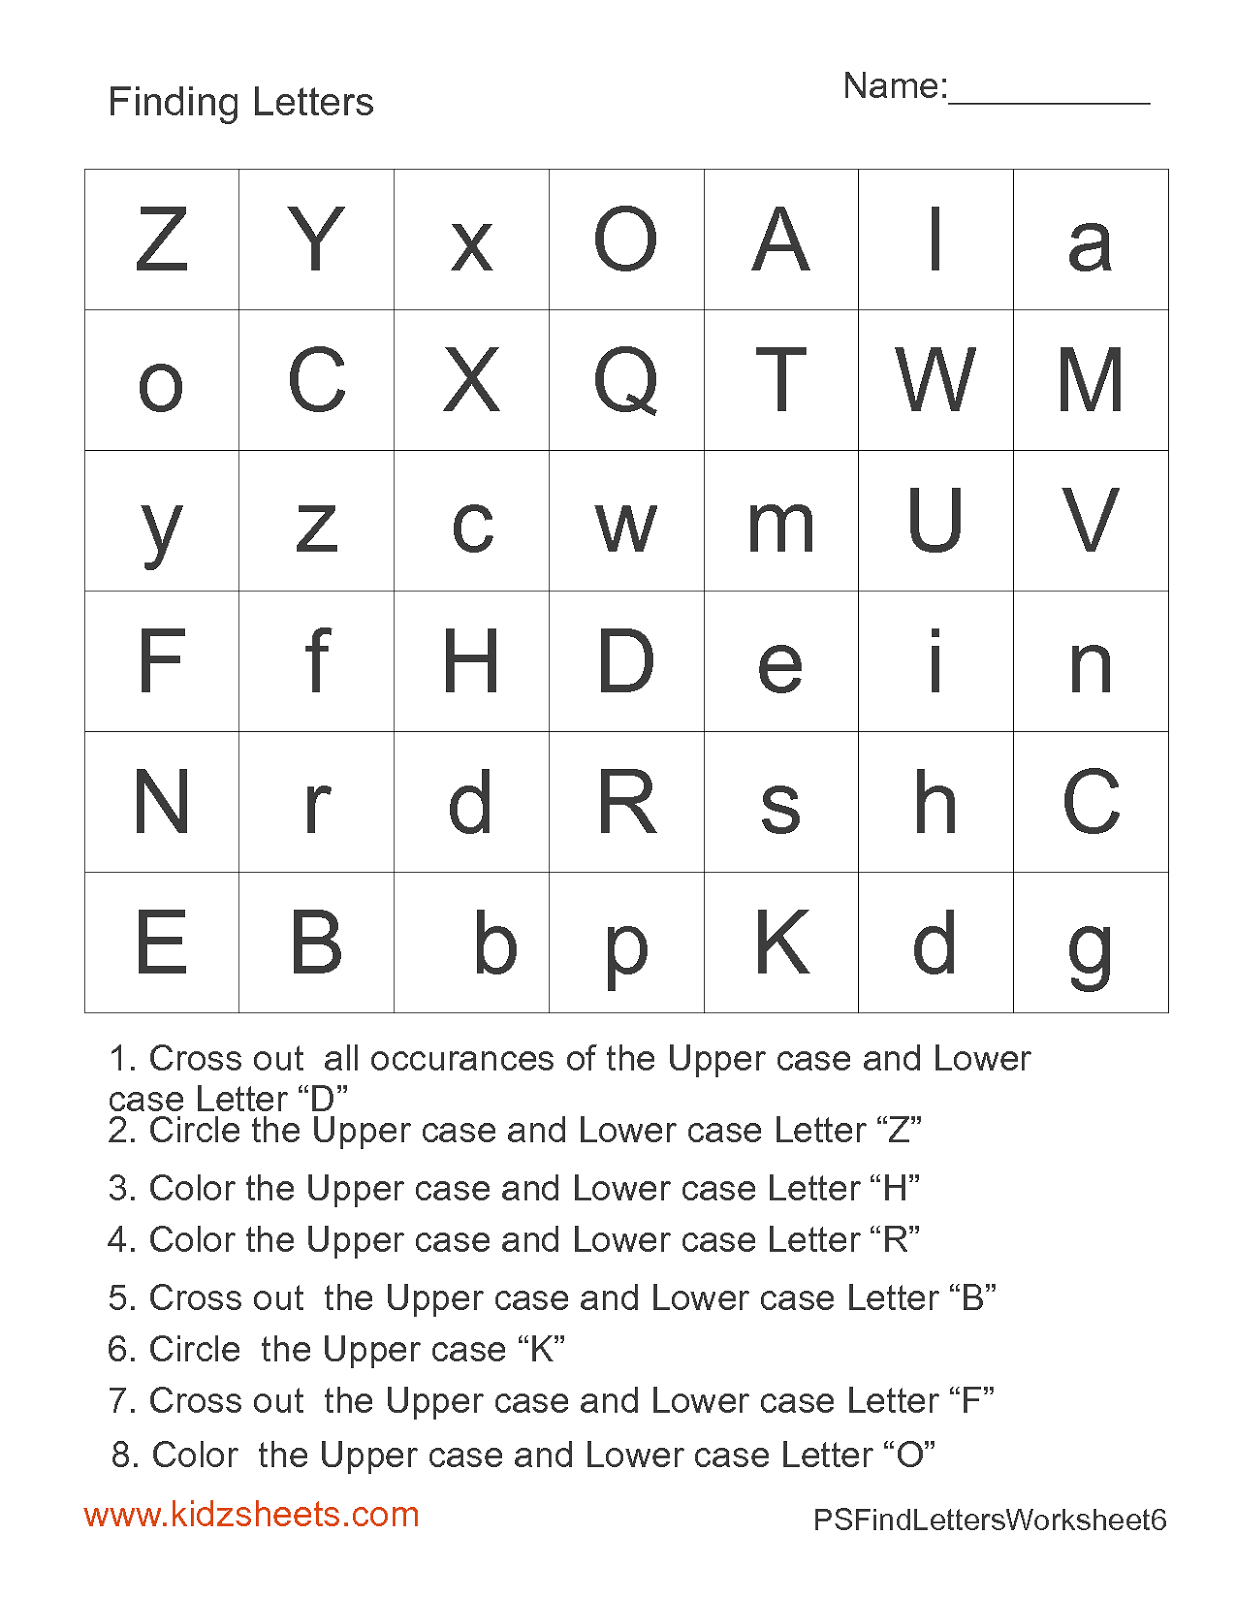 Kidz Worksheets Preschool Find Letters Worksheet6